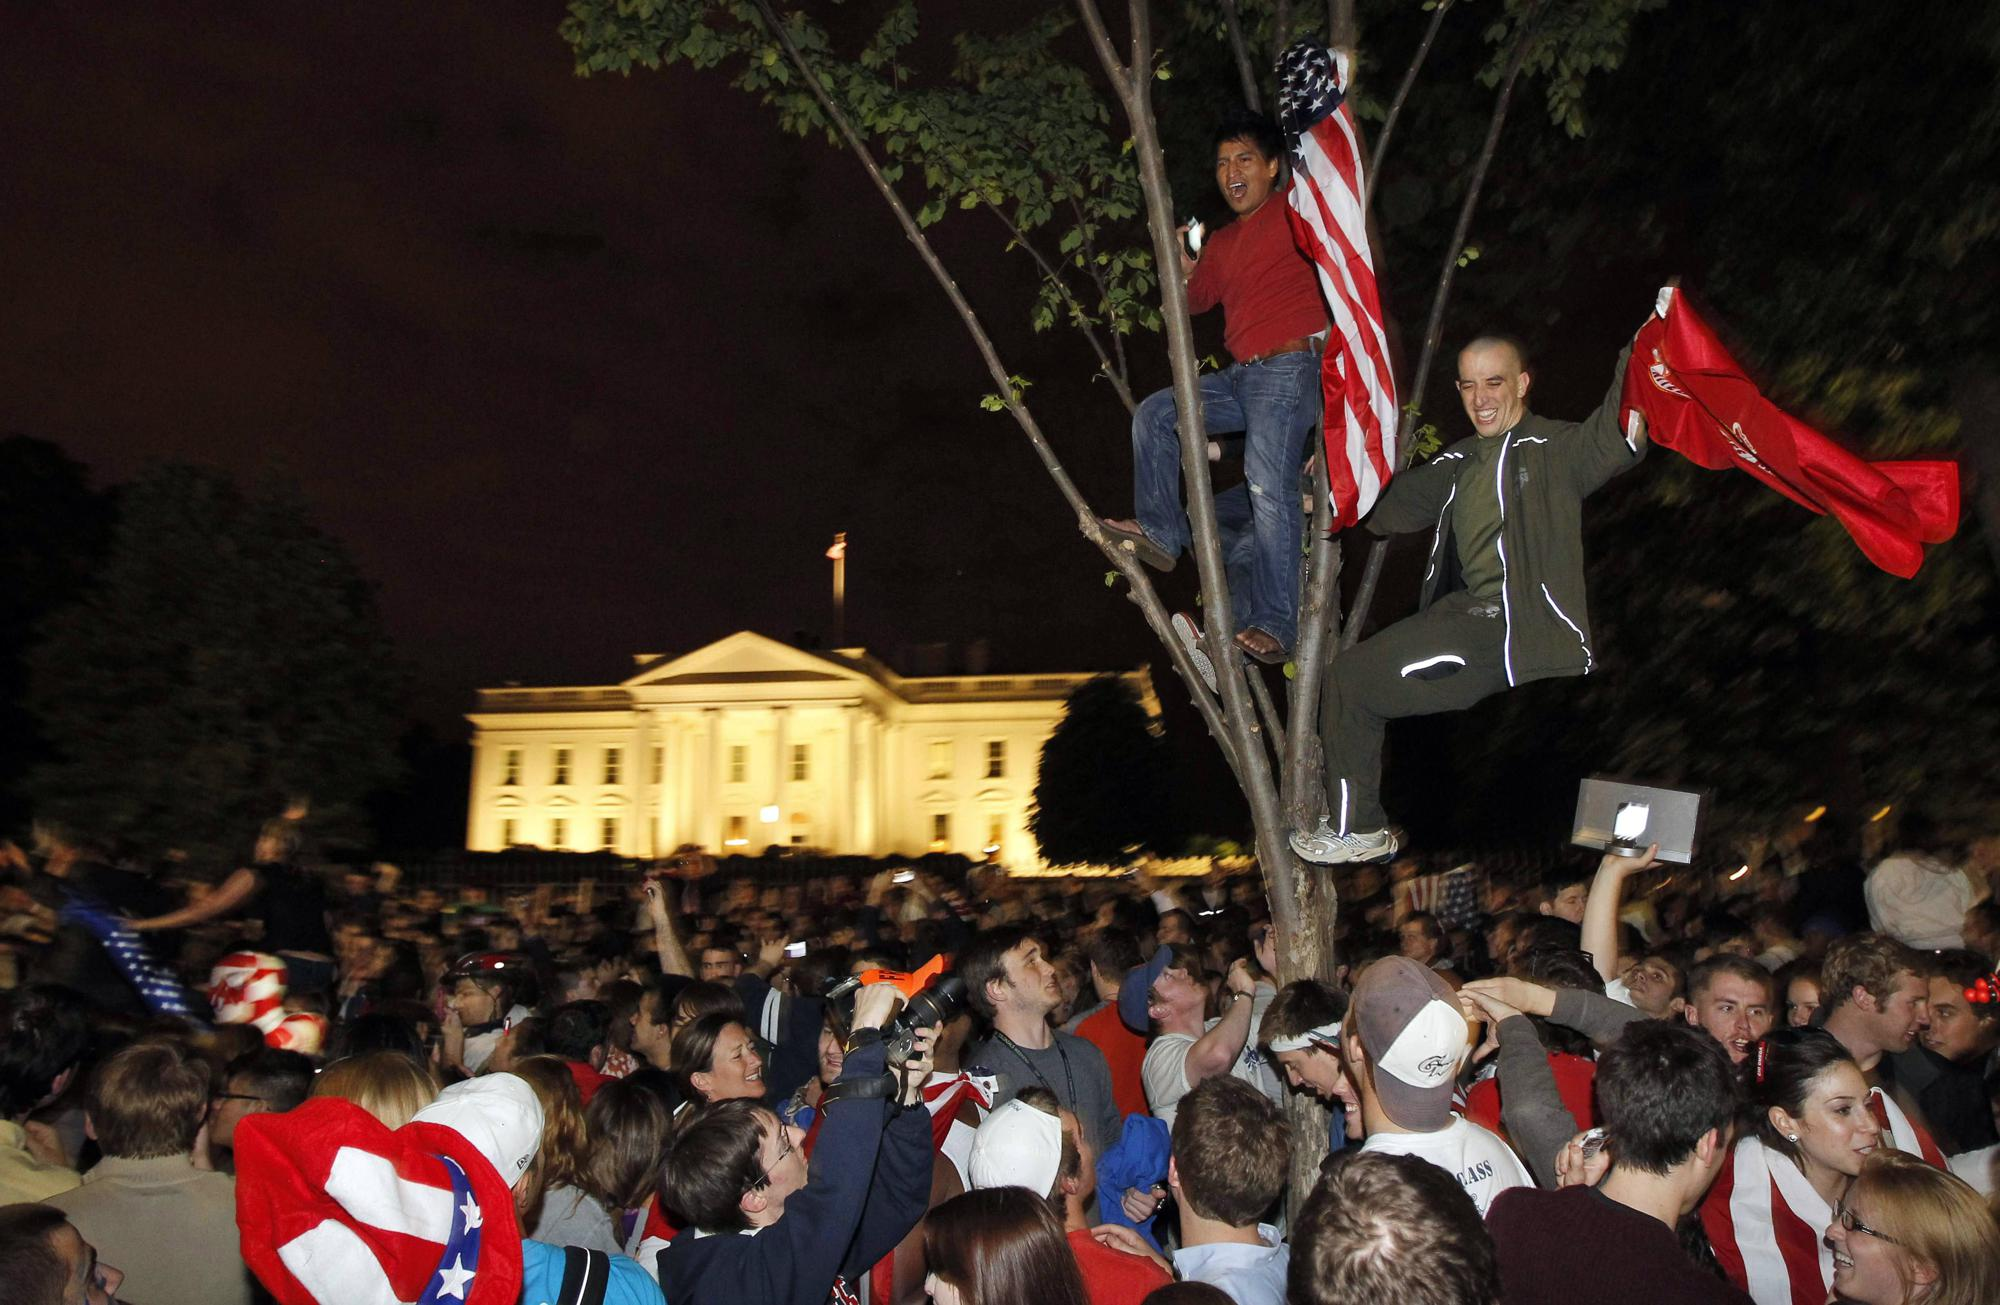 FILE - In this Monday, May 2, 2011 file photo, crowds climb trees and celebrate in Lafayette Park in front of the White House in Washington after President Barack Obama announced that Osama bin Laden had been killed. (AP Photo/Charles Dharapak, File)